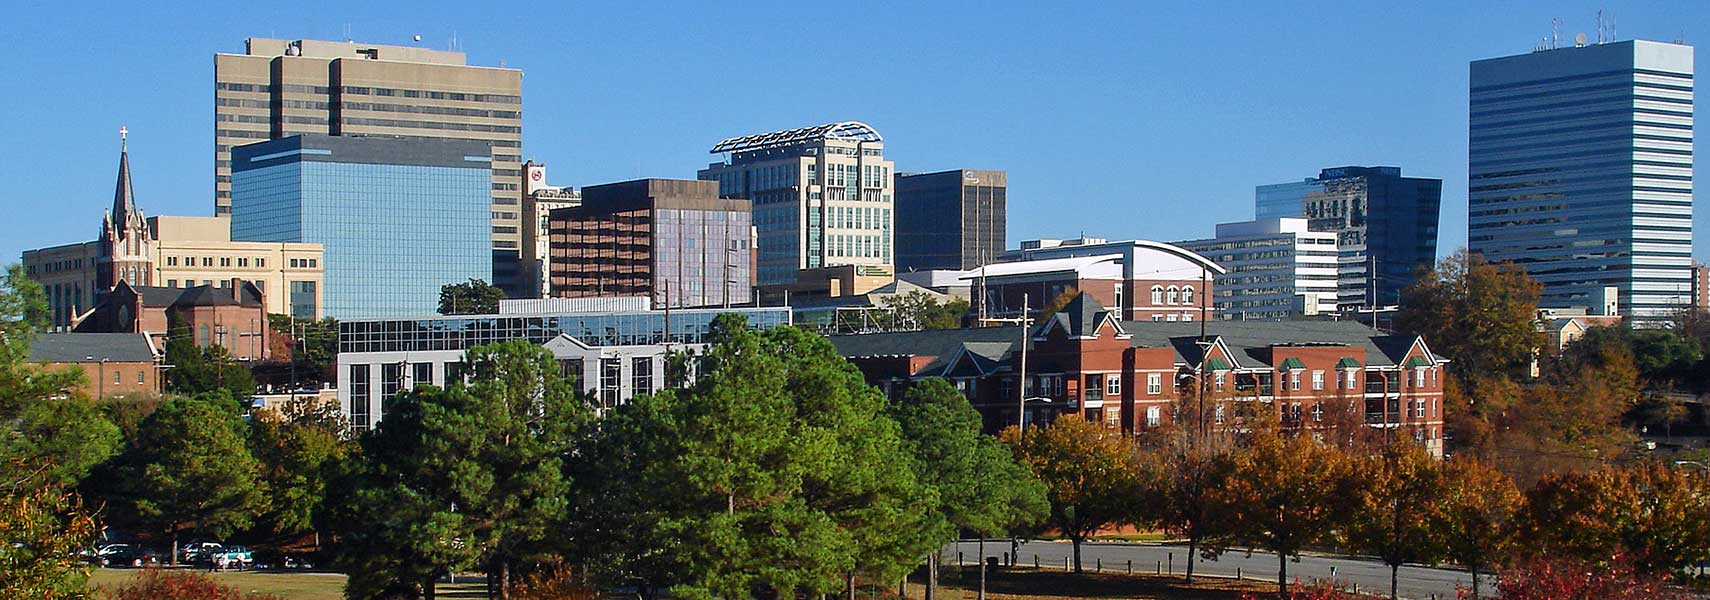 Skyline of Columbia, South Carolina